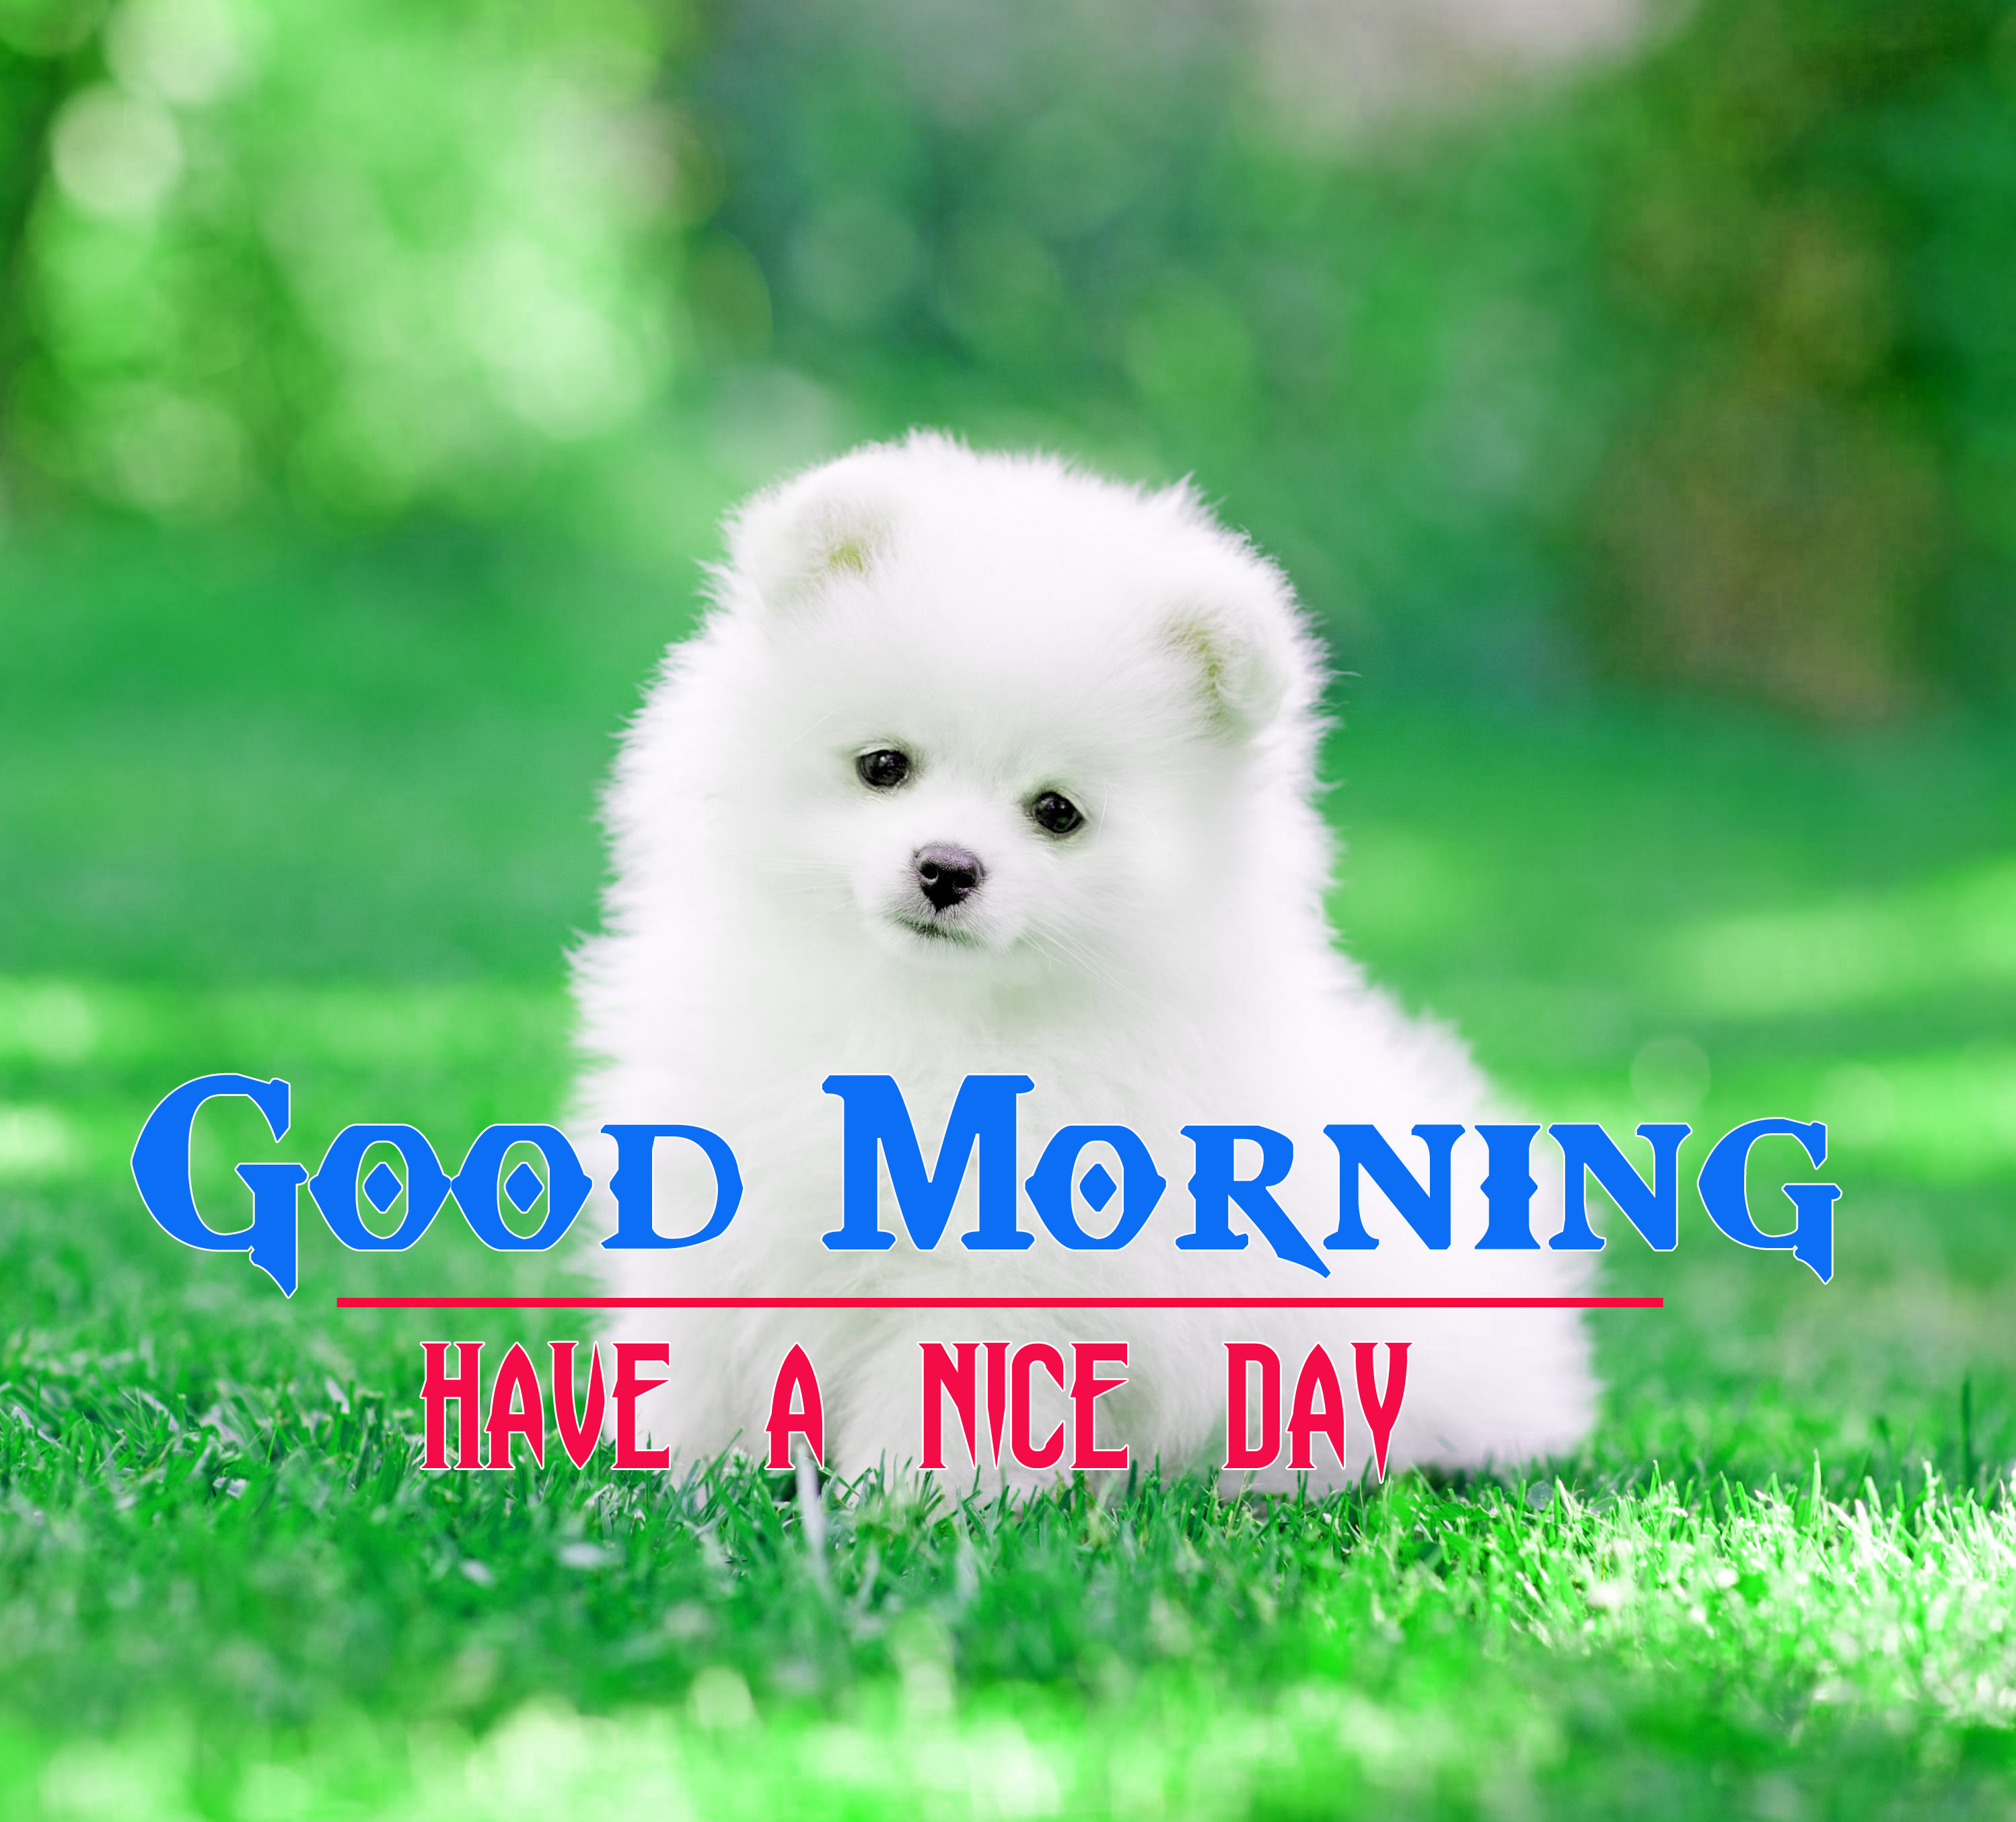 Cute Dog Puppy Good Morning Images 2